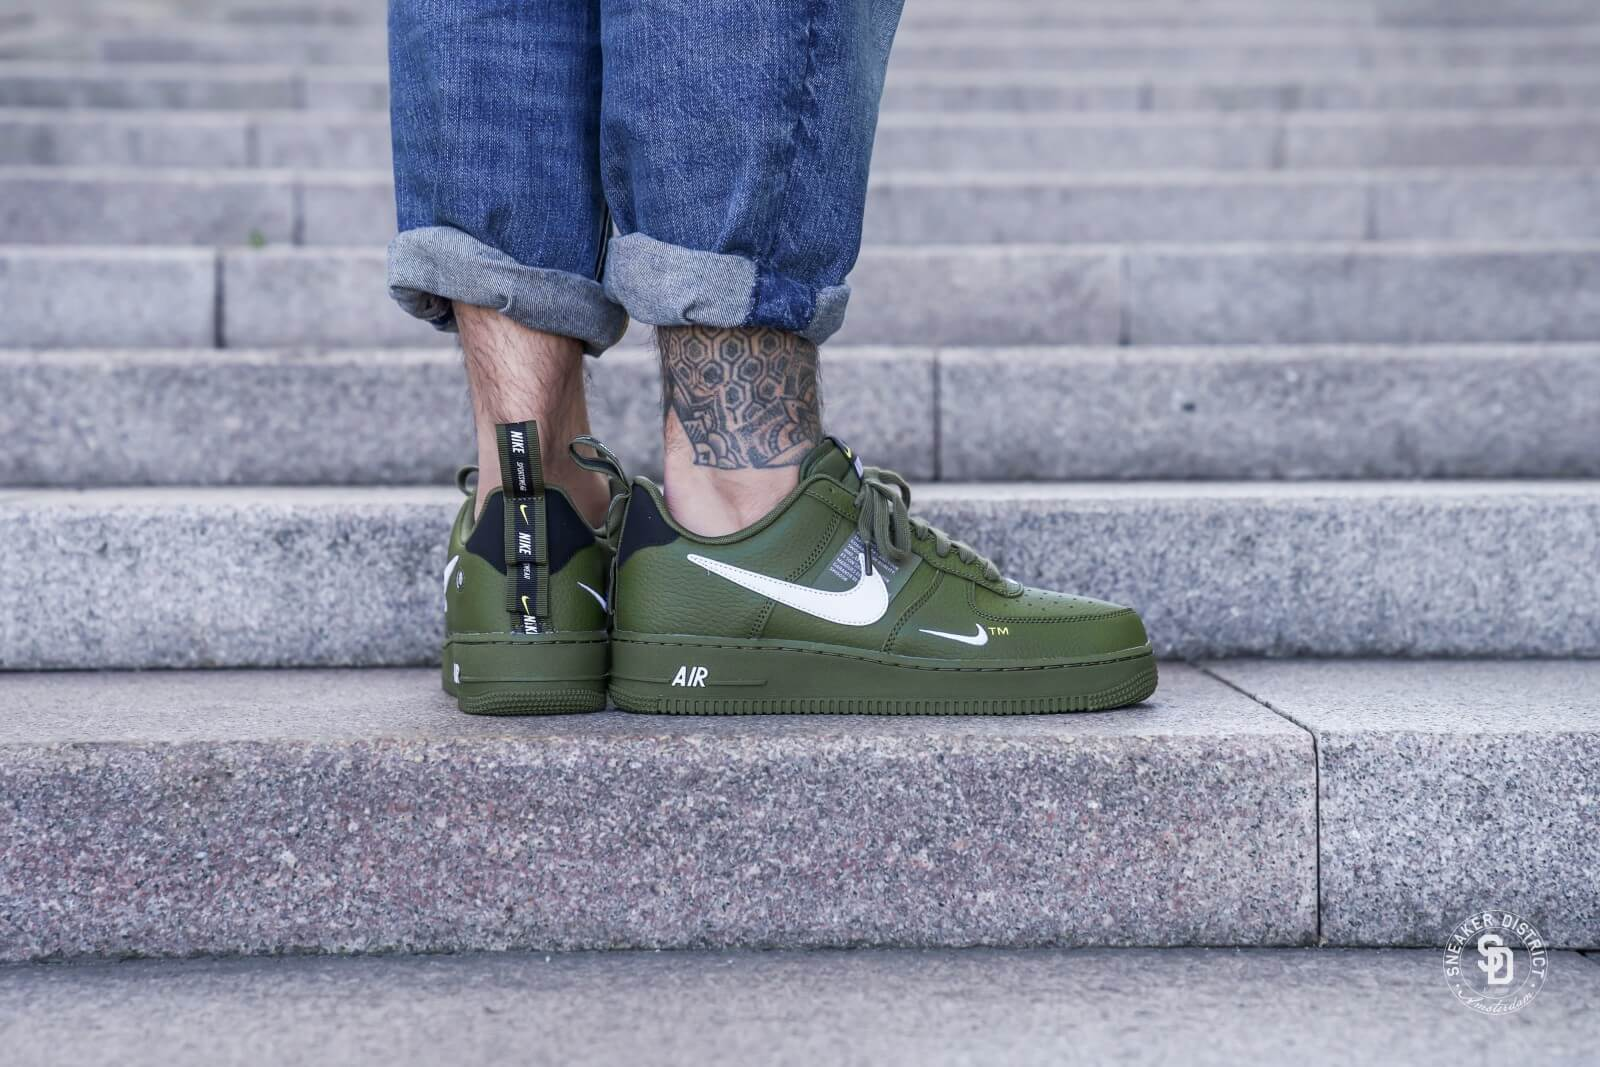 nike air force 1 07 lv8 utility olive green